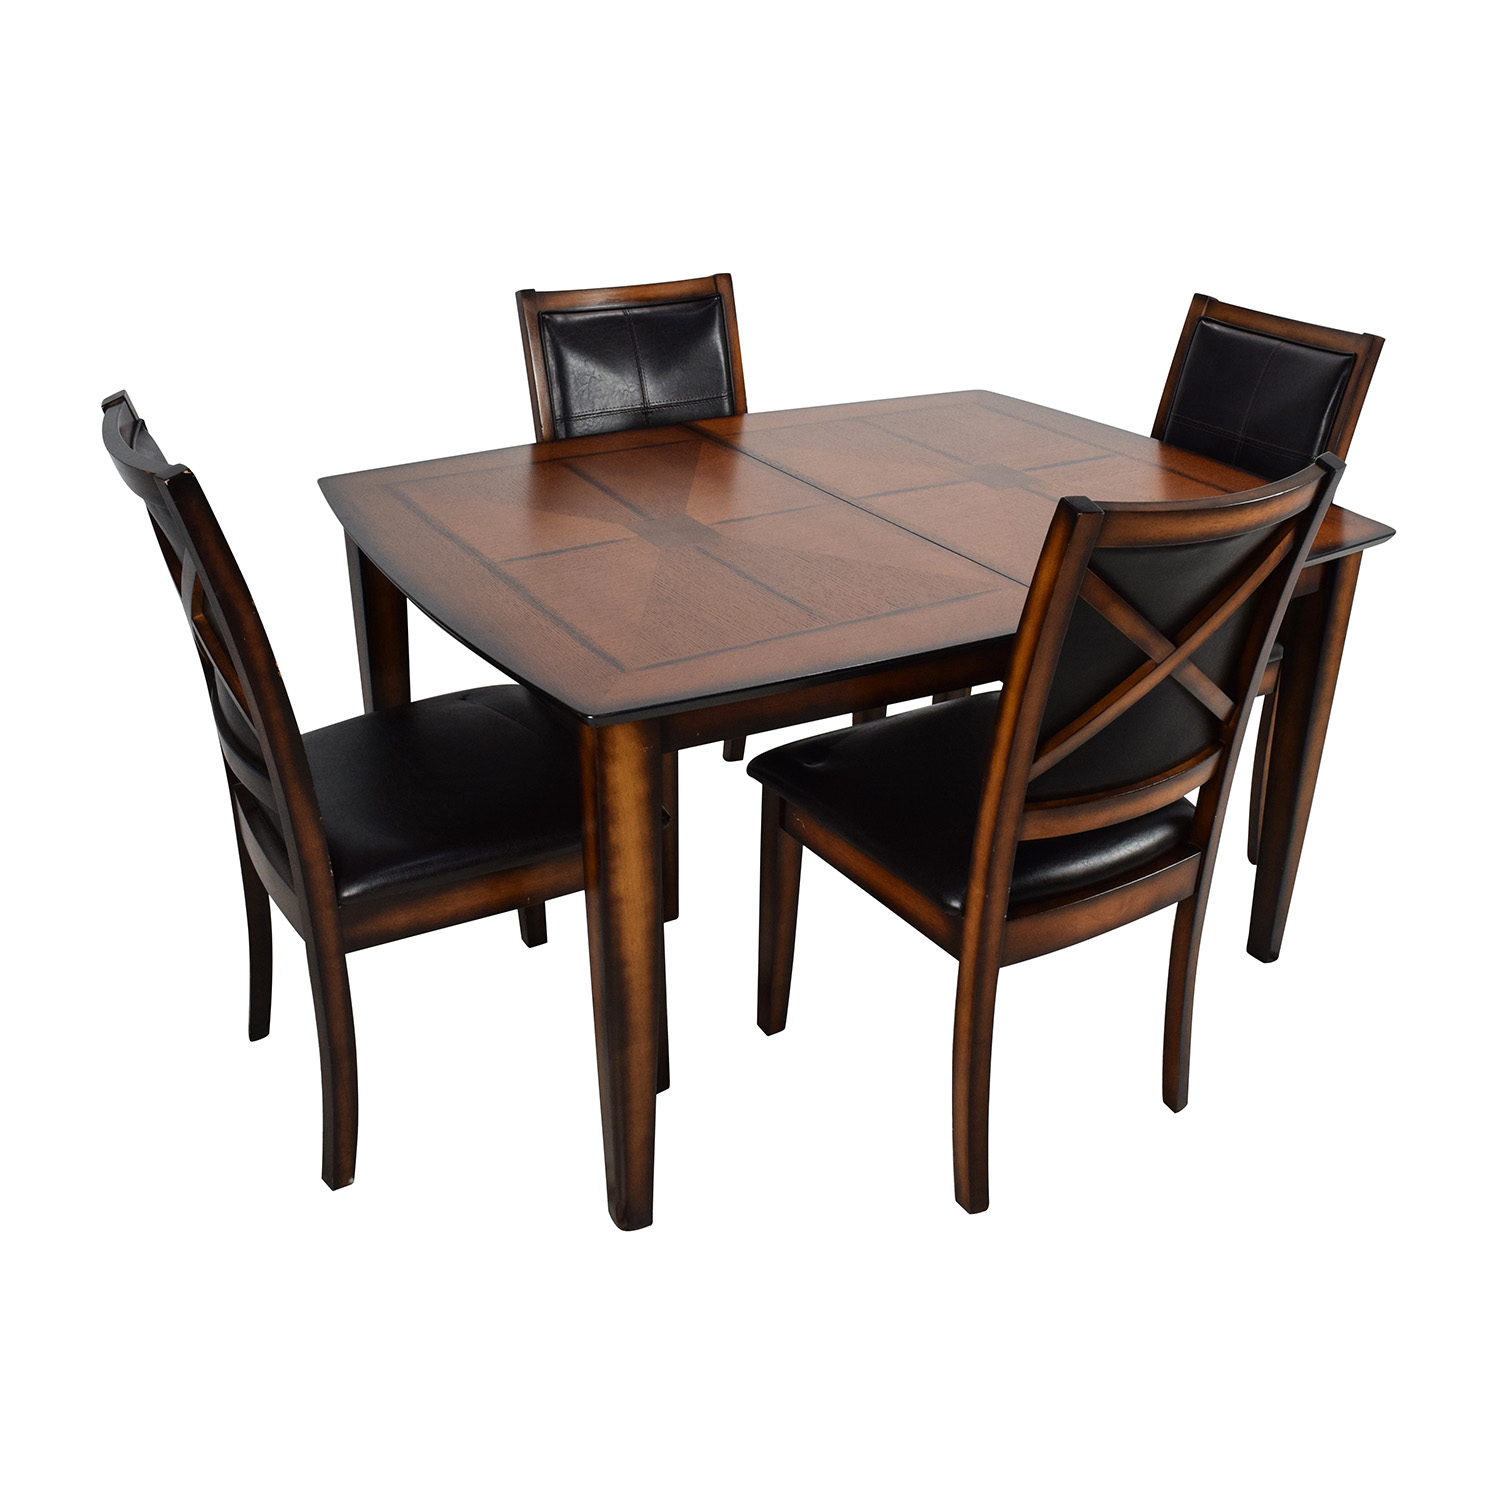 Raymour and Flanigan Raymour u0026 Flanigan Denver 5-Piece Extendable Dining Set price ...  sc 1 st  Furnishare & 59% OFF - Raymour and Flanigan Raymour u0026 Flanigan Denver 5-Piece ...